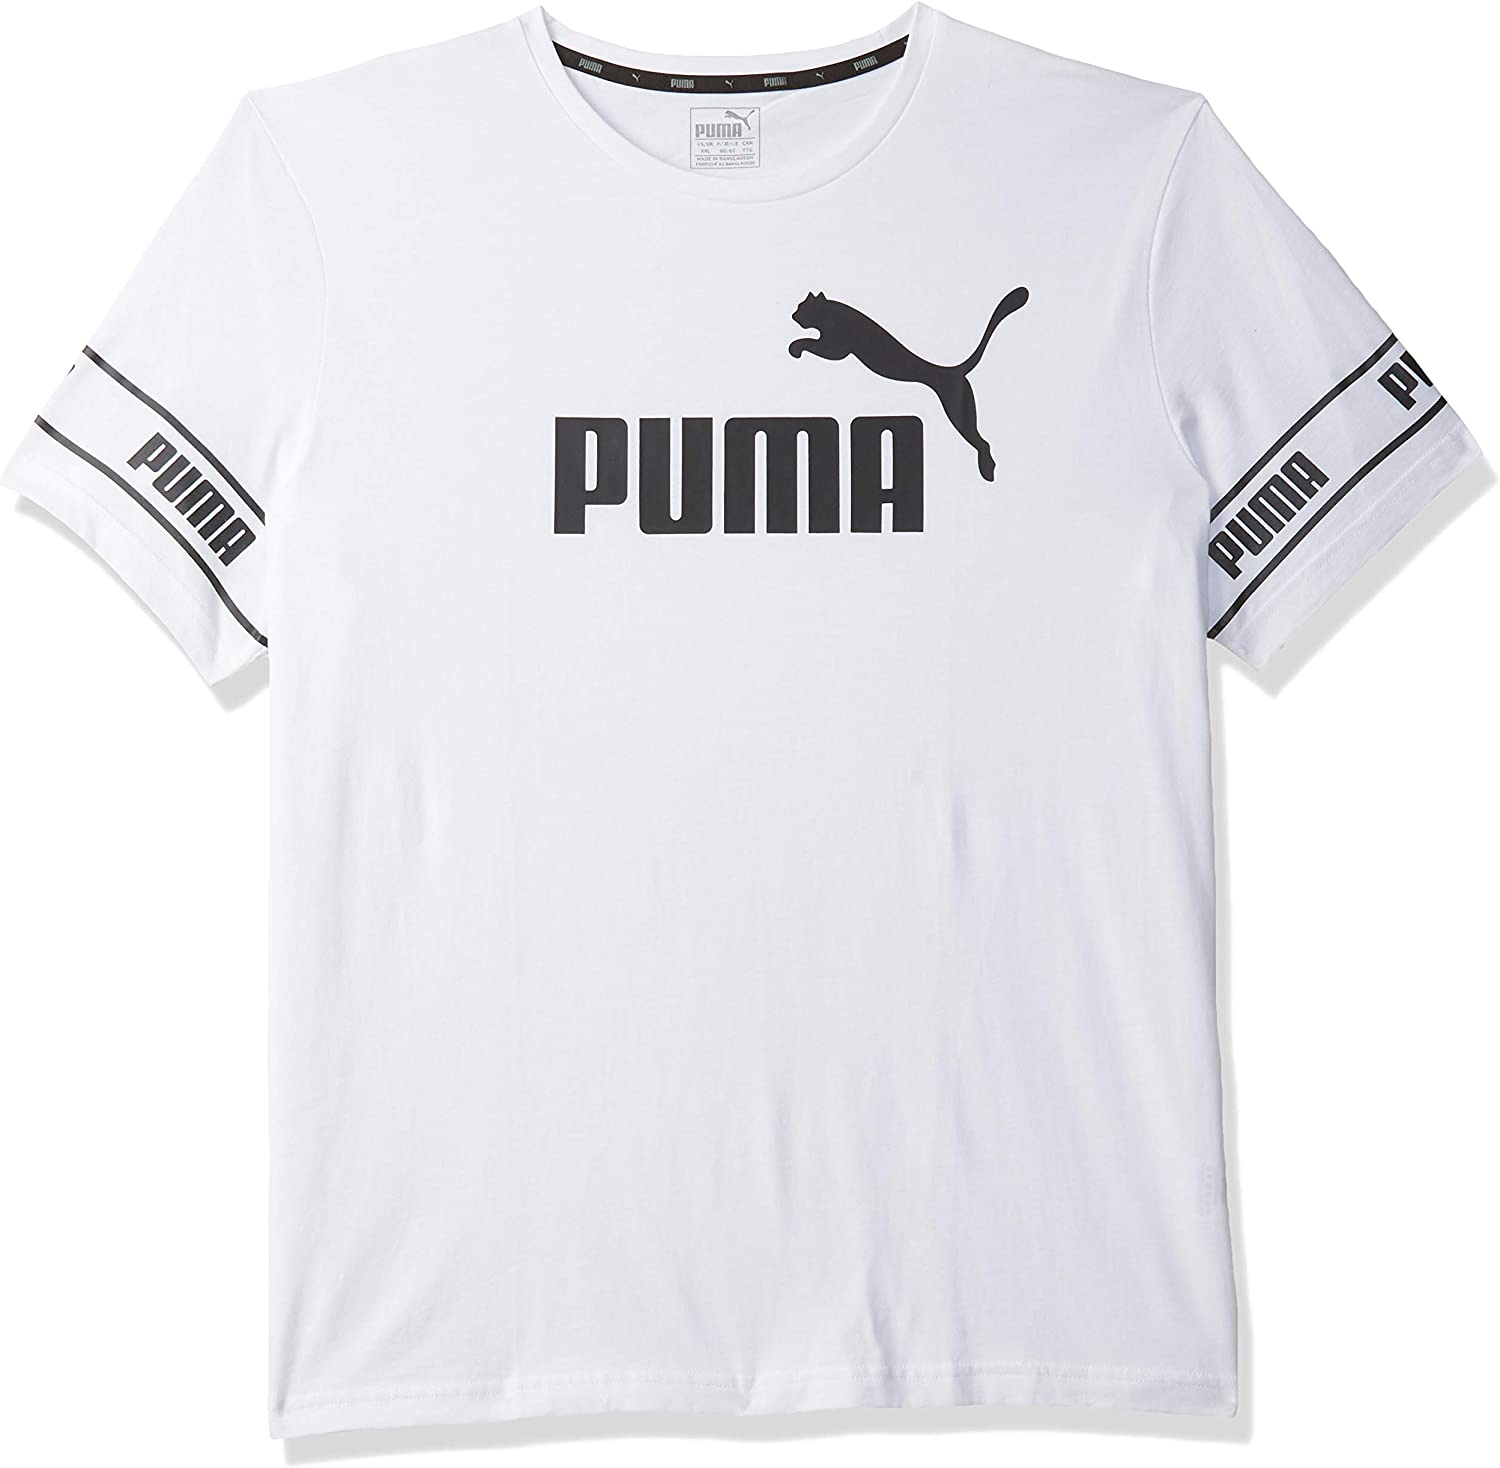 PUMA Amplified Big Logo tee Camiseta, Hombre: Amazon.es: Deportes ...